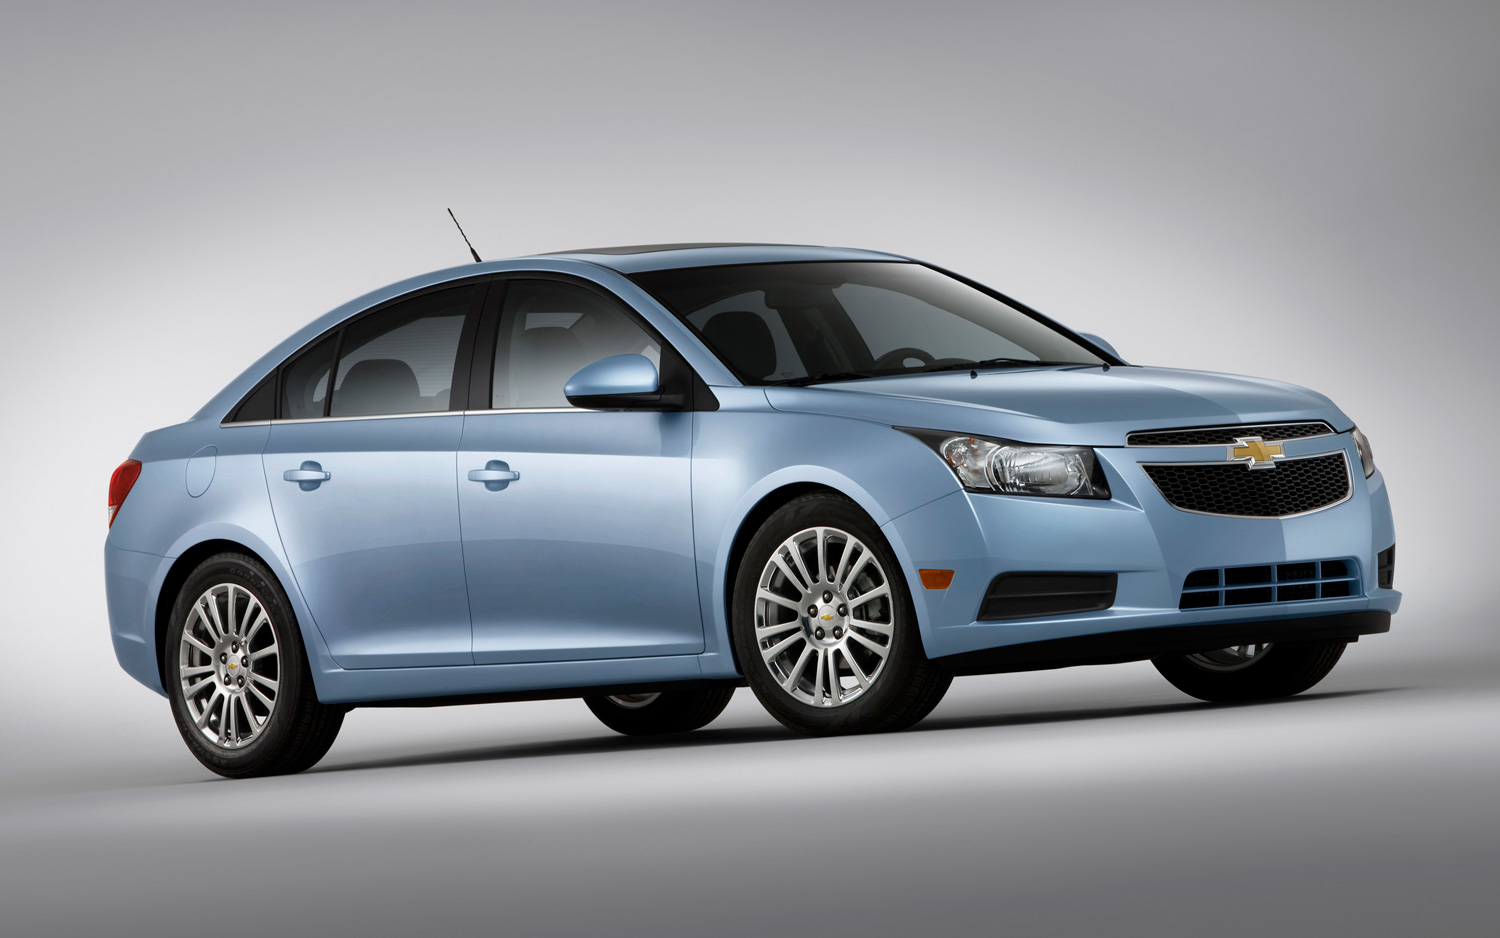 New Car Models 2013 Chevrolet Cruze